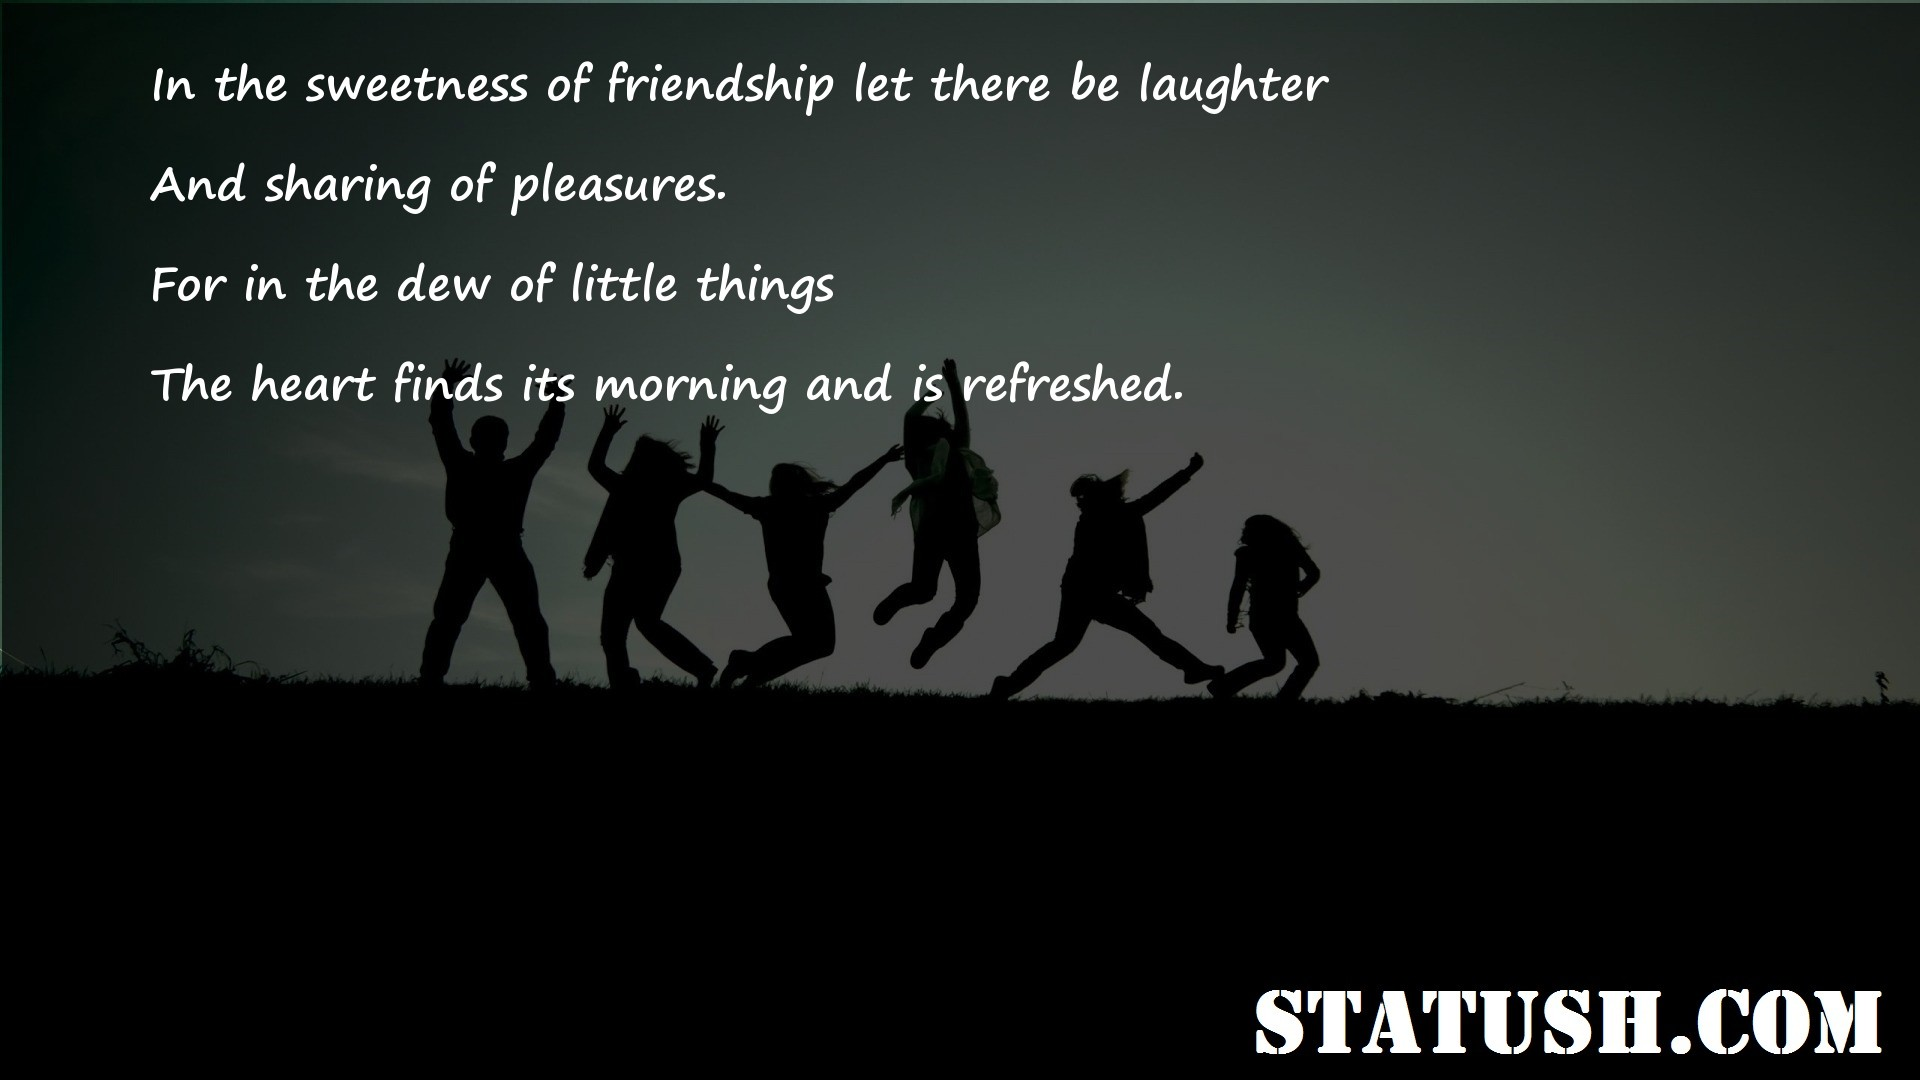 In the sweetness of friendship let there be laughter